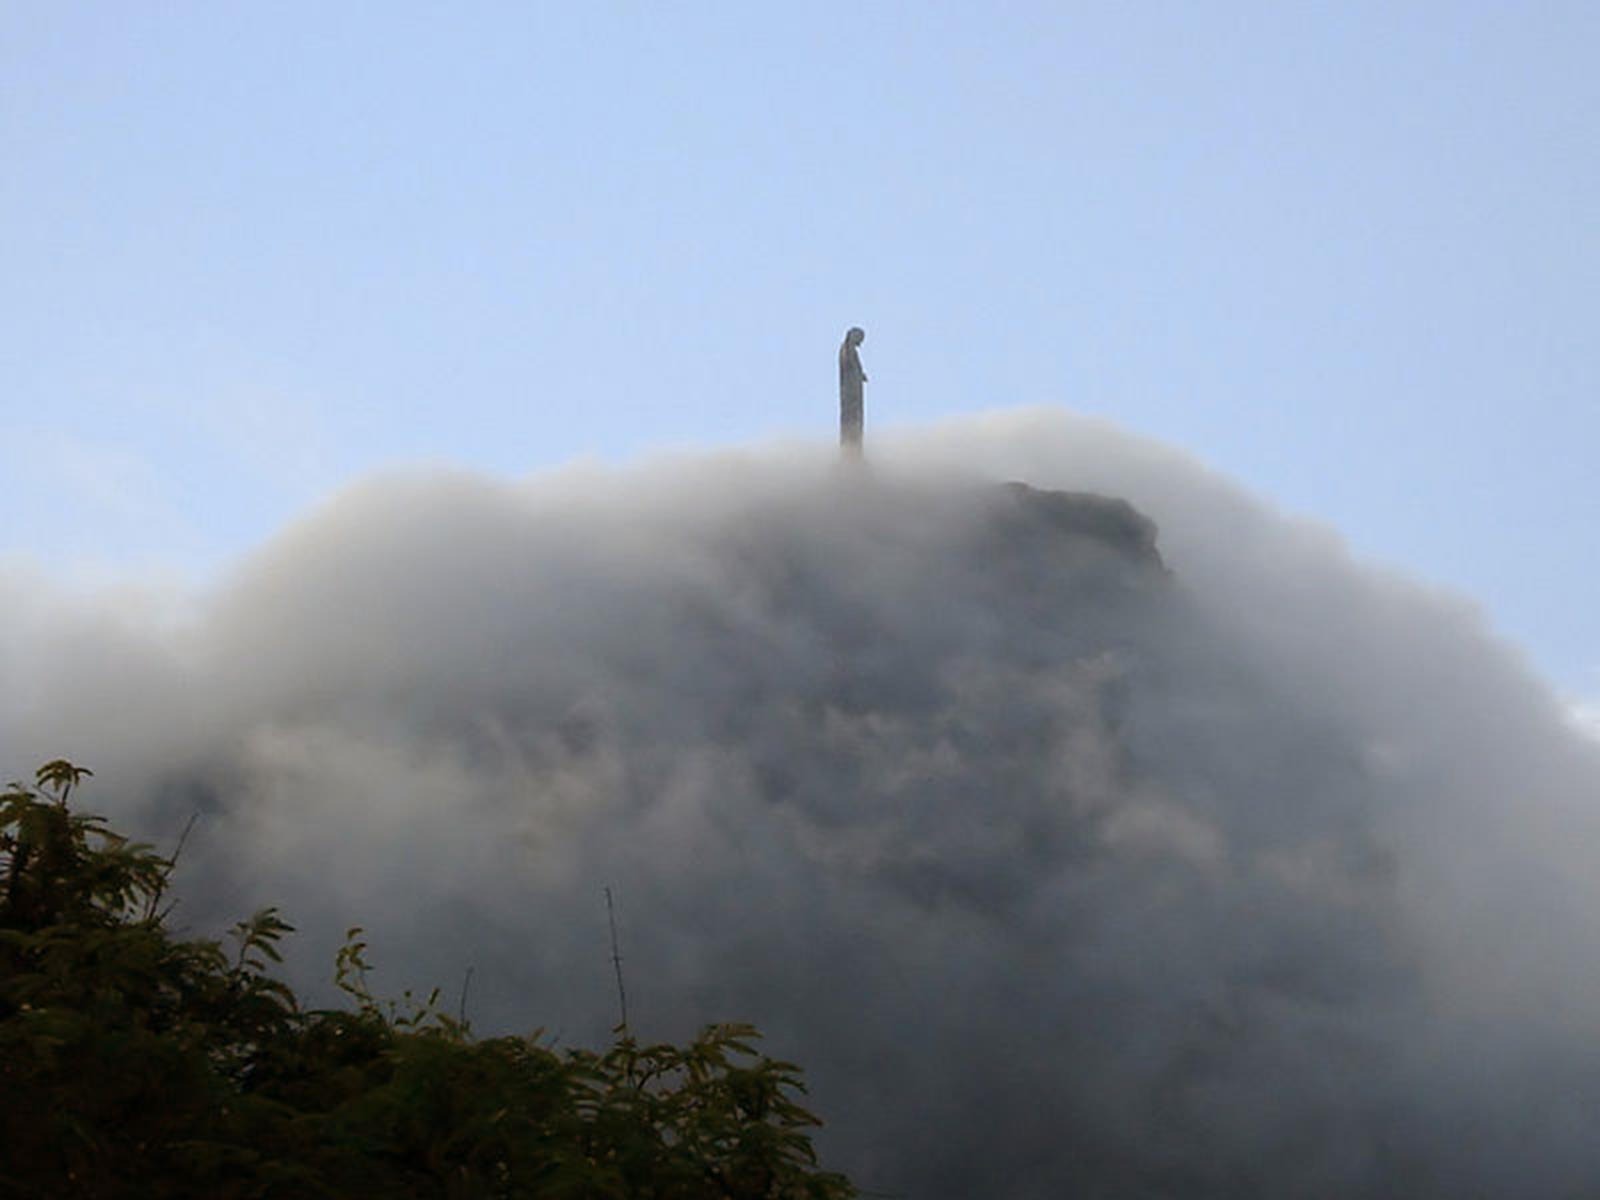 Clouds under the Statue of Christ